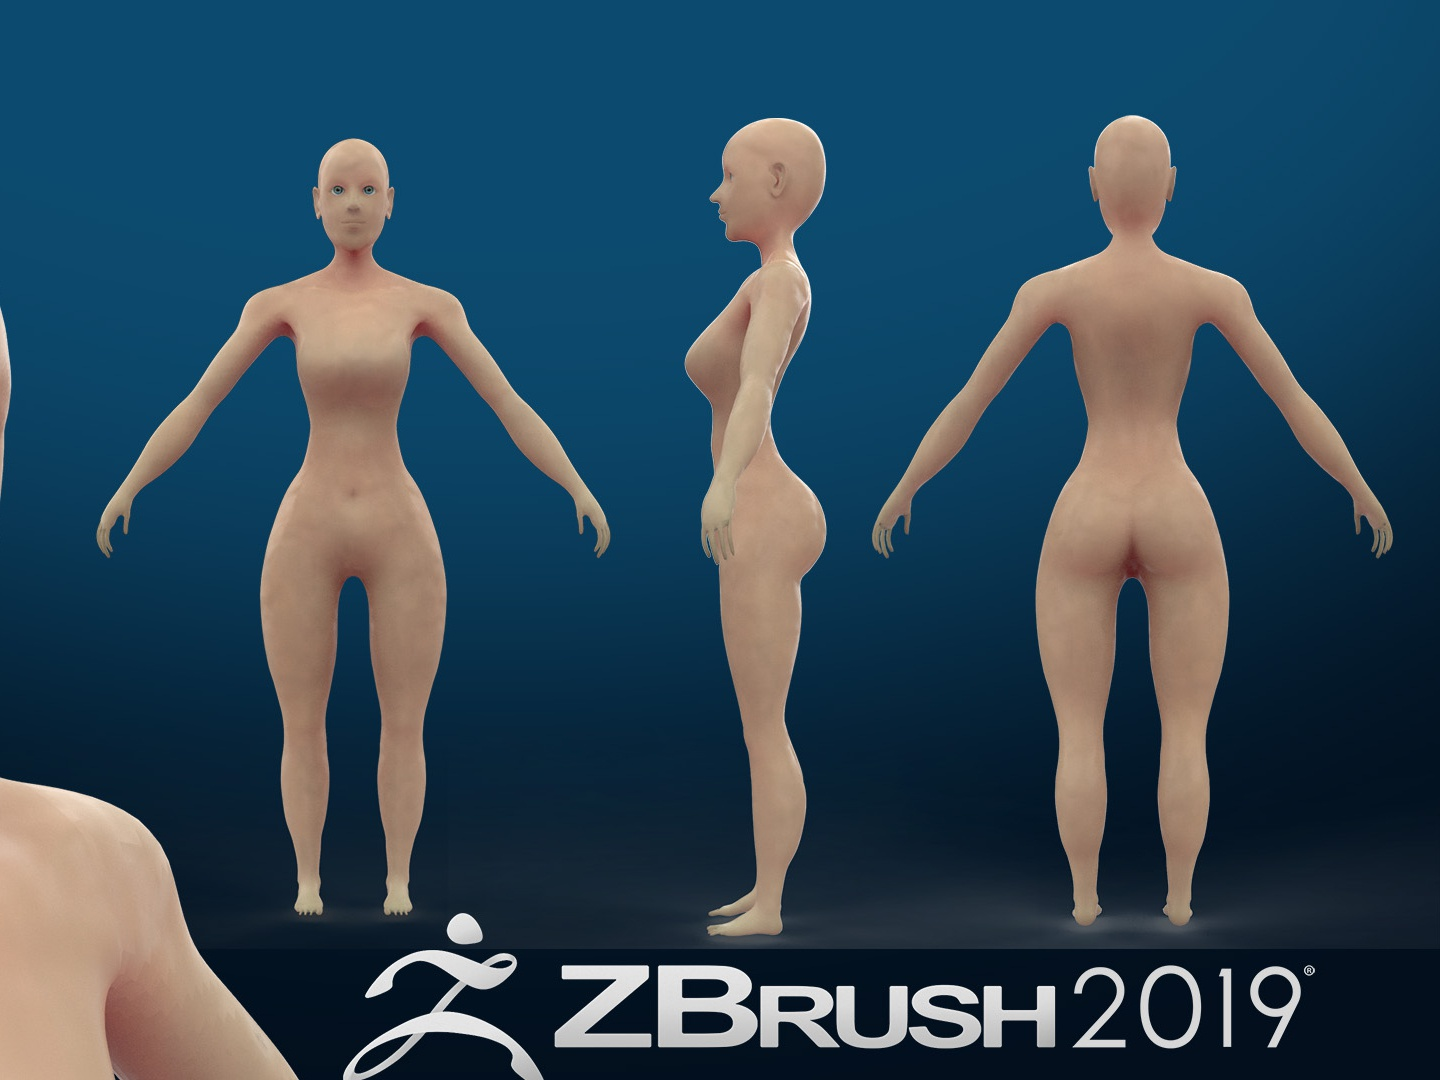 Zbrush tutorial How to create female base face modelinbg in zbrush face sculpting in zbrush game character design free download 3d models base mesh 3d female base mesh 3d female 3d cartoon character 3d character design 3d modeling modeling sculpting polygroups zremesher 3d sculpting sculptris in zbrush dynamesh in zbrush zbrush tutorials picologix zbrush